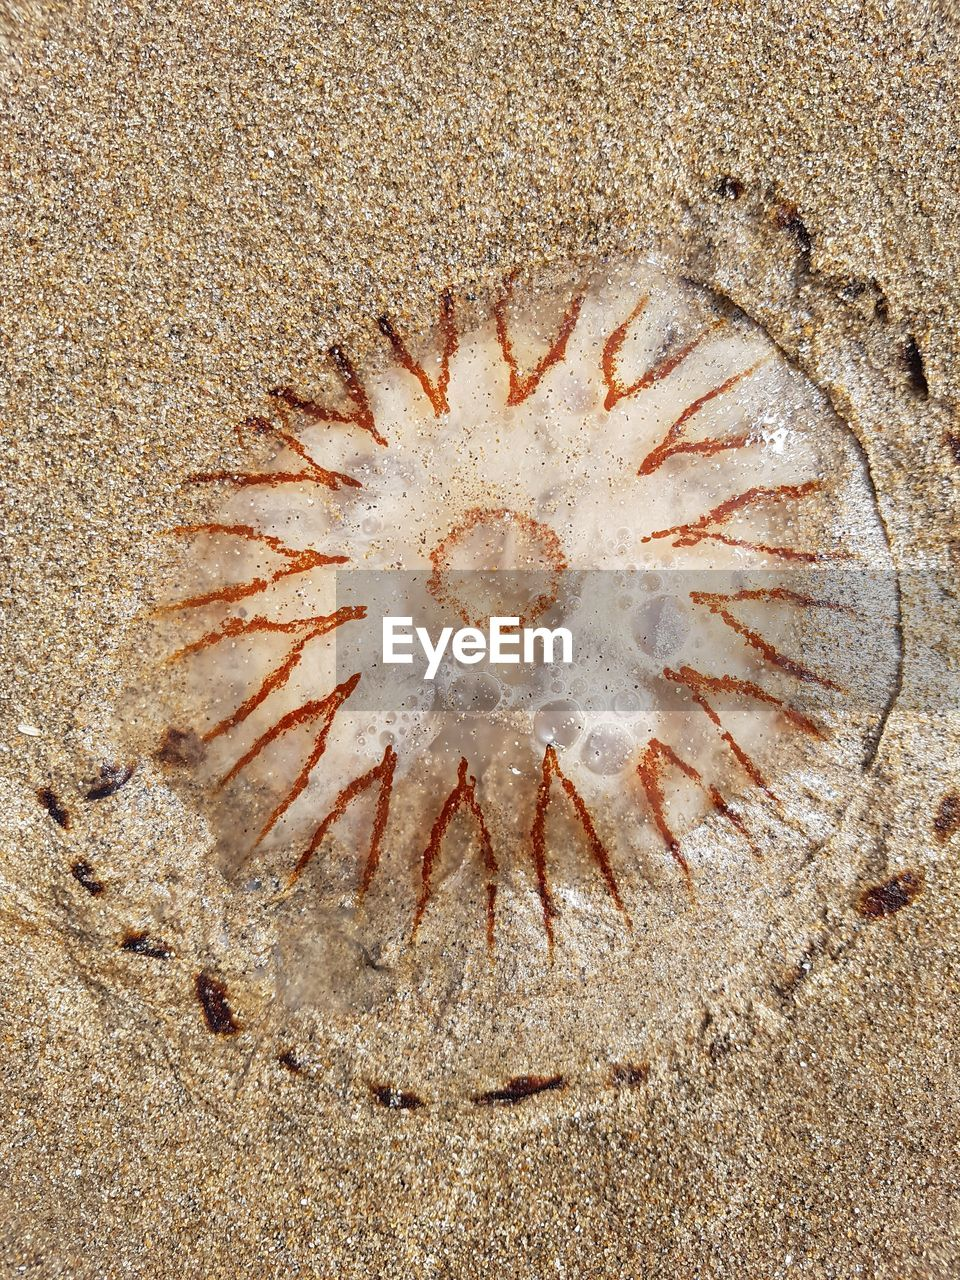 sand, beach, fossil, no people, desert, nature, sea life, close-up, day, outdoors, concentric, undersea